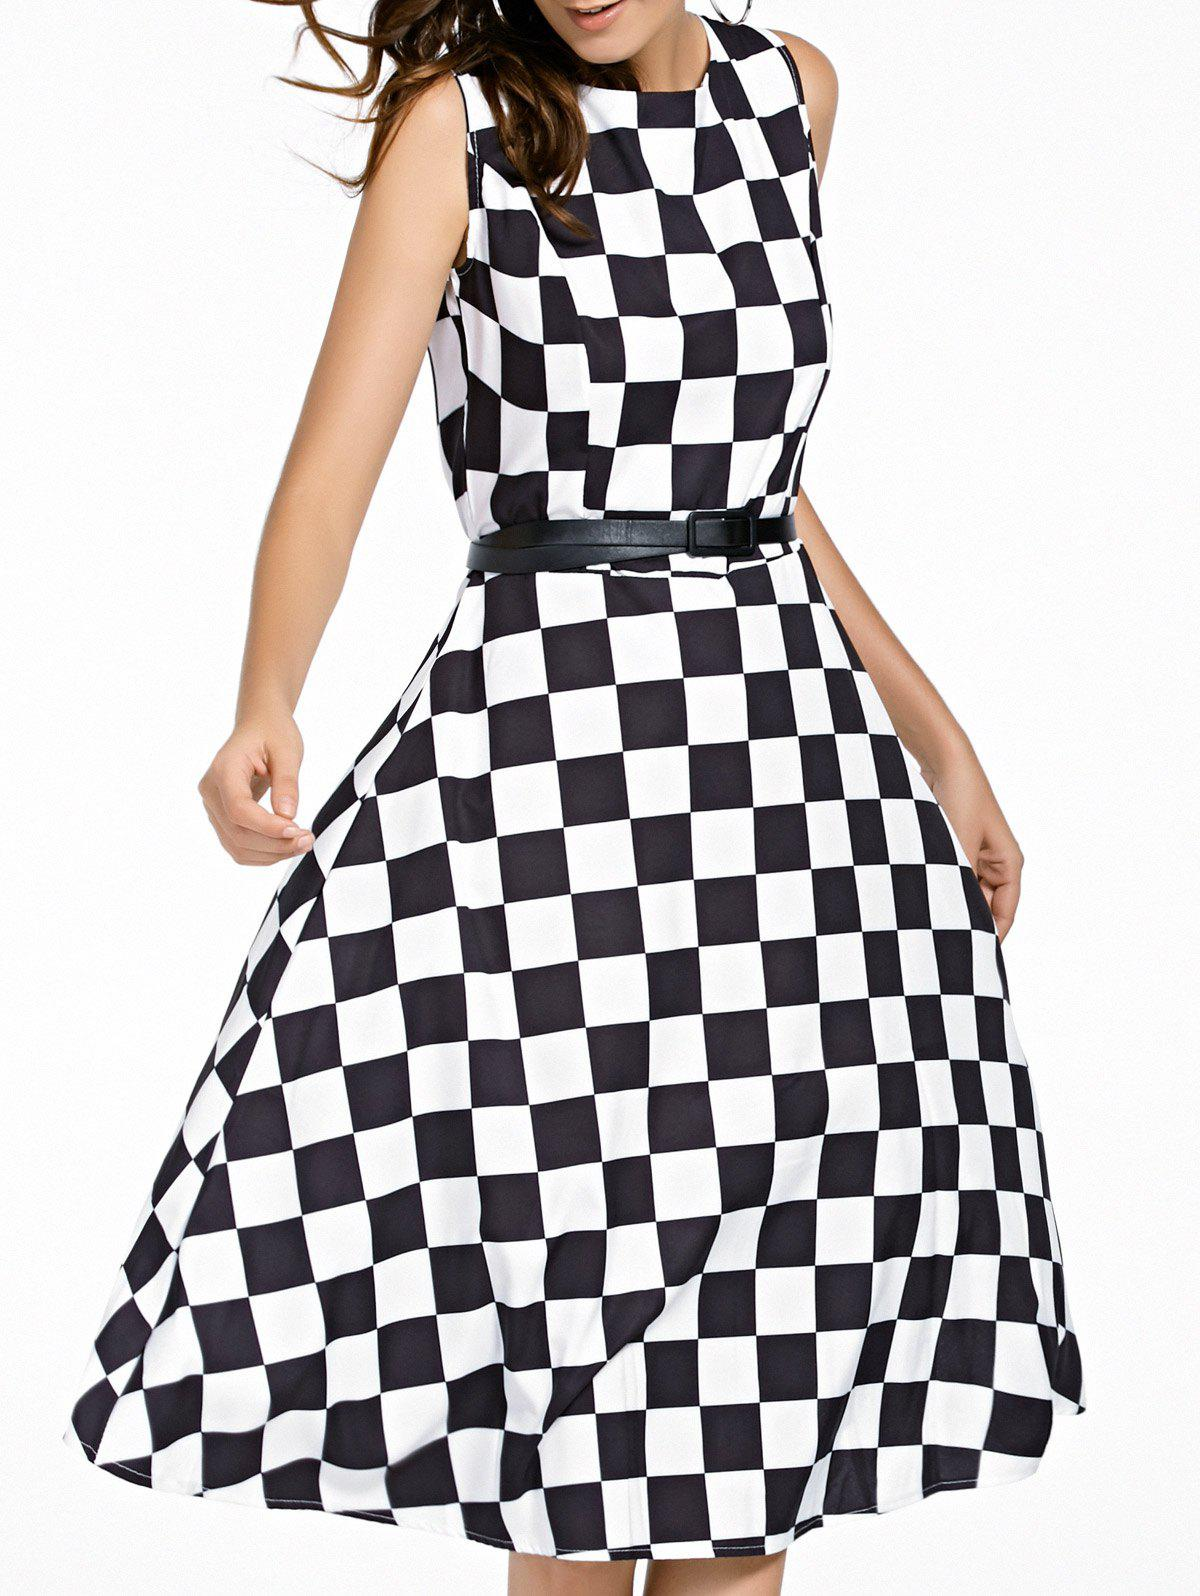 Retro Style Jewel Neck Checked Pattern Sleeveless Women's Dress